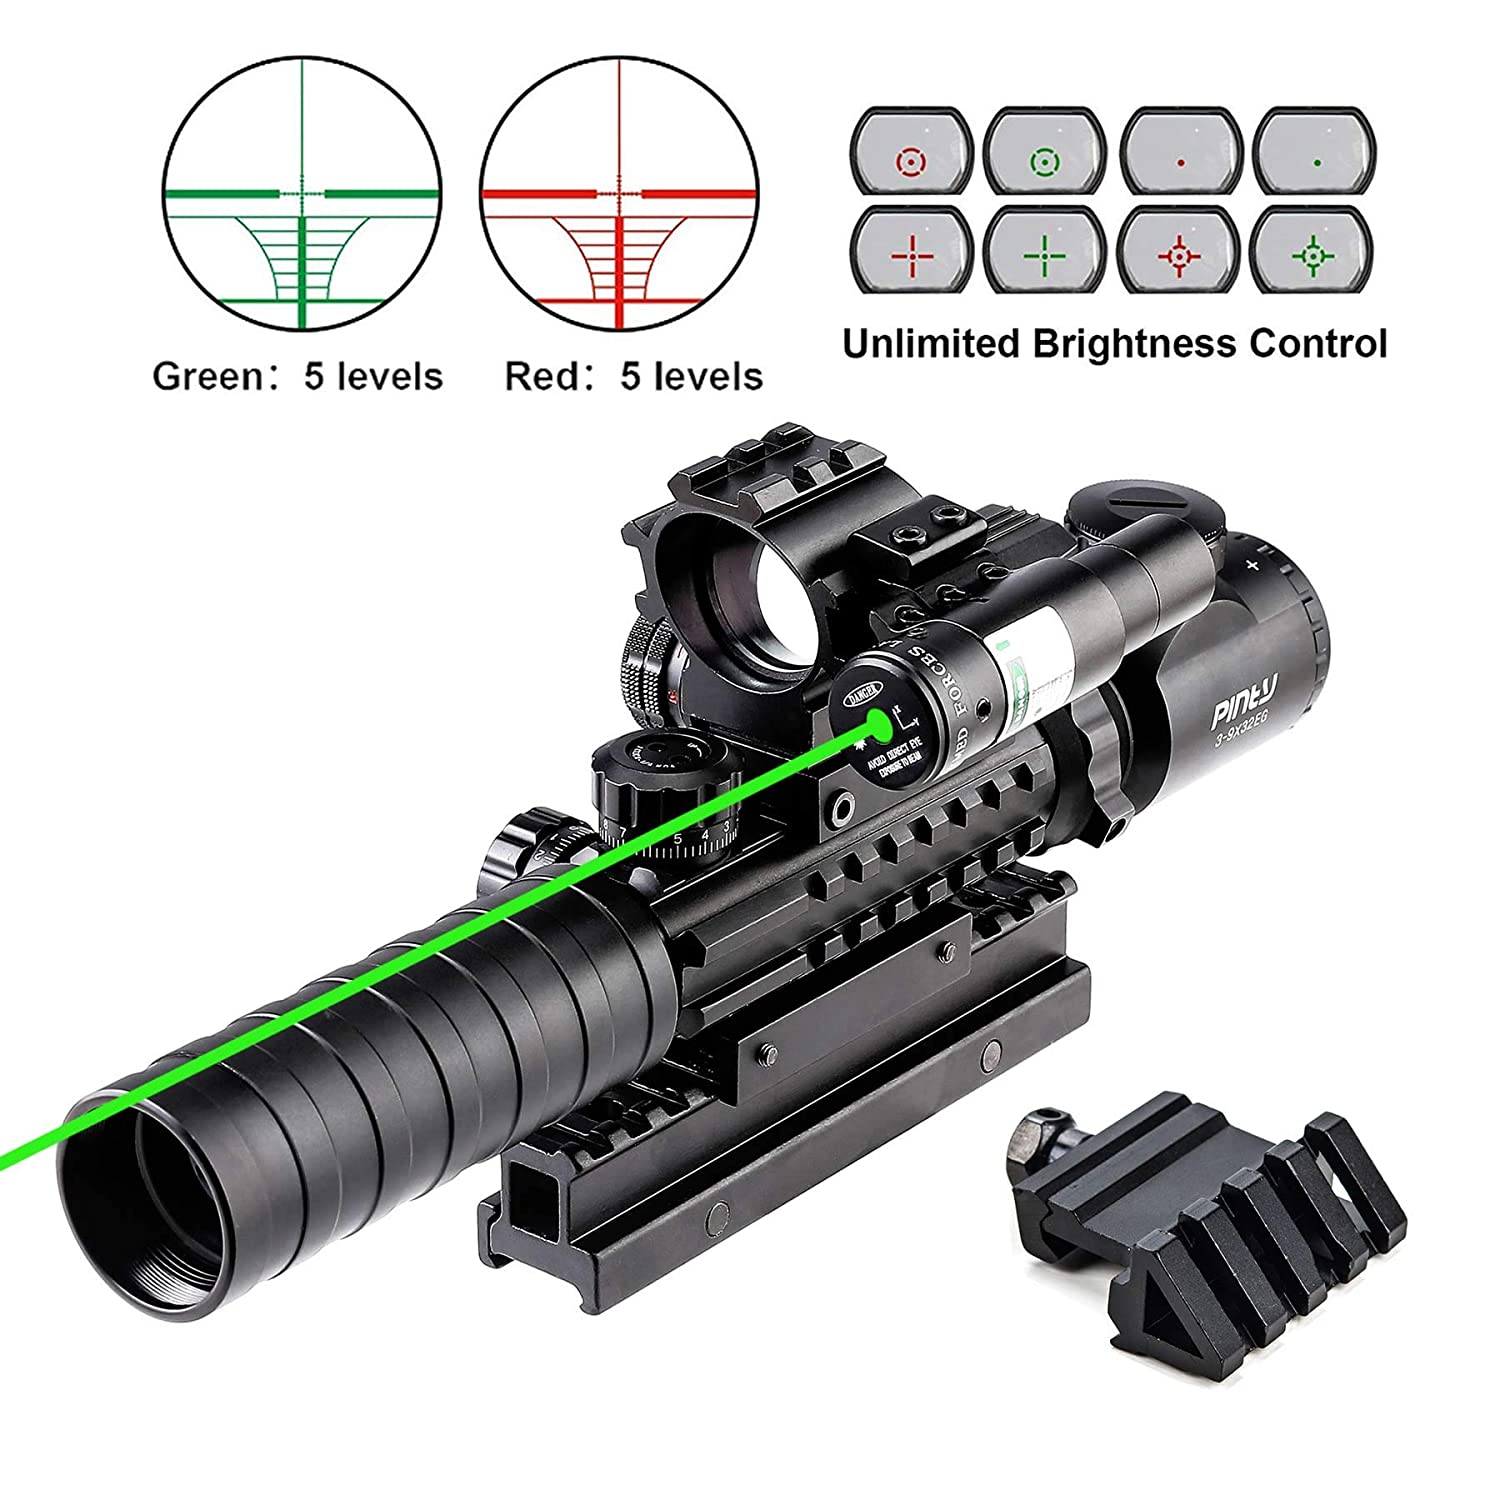 Pinty Rifle Scope 3-9×32 Rangefinder Illuminated Optics Red Green Reflex 4 Reticle Sight Green Dot Laser Sight with 14 Slots 1 inch High Riser Mount,45 Degree Mount